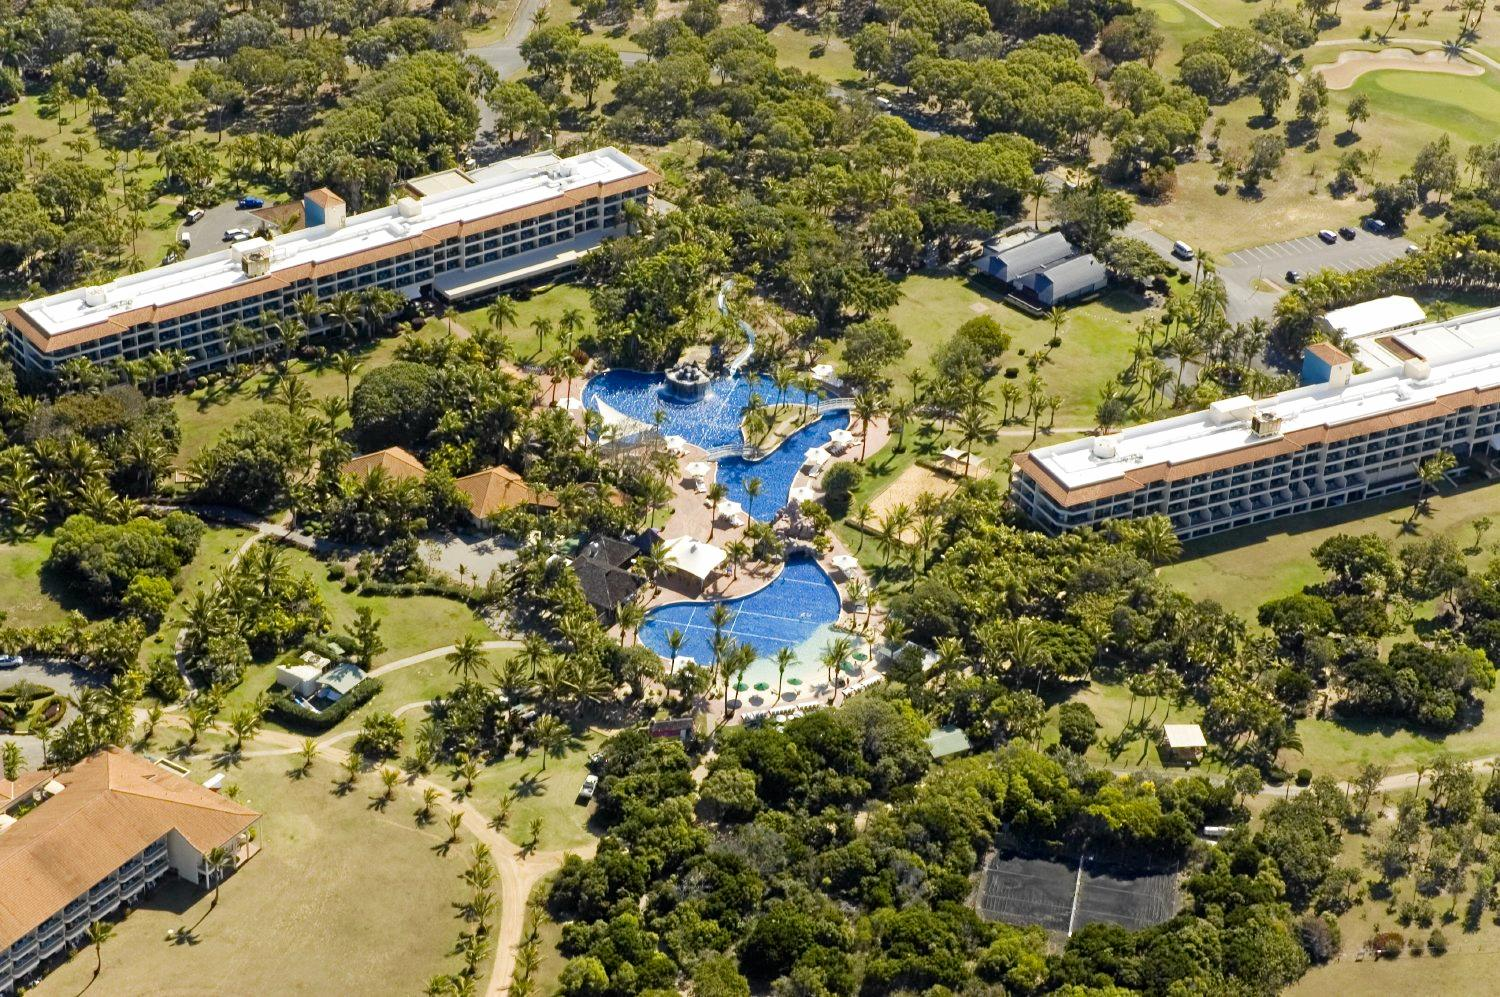 HOLDING ON: The Capricorn Resort is often still referred to by locals as Iwasaki's.